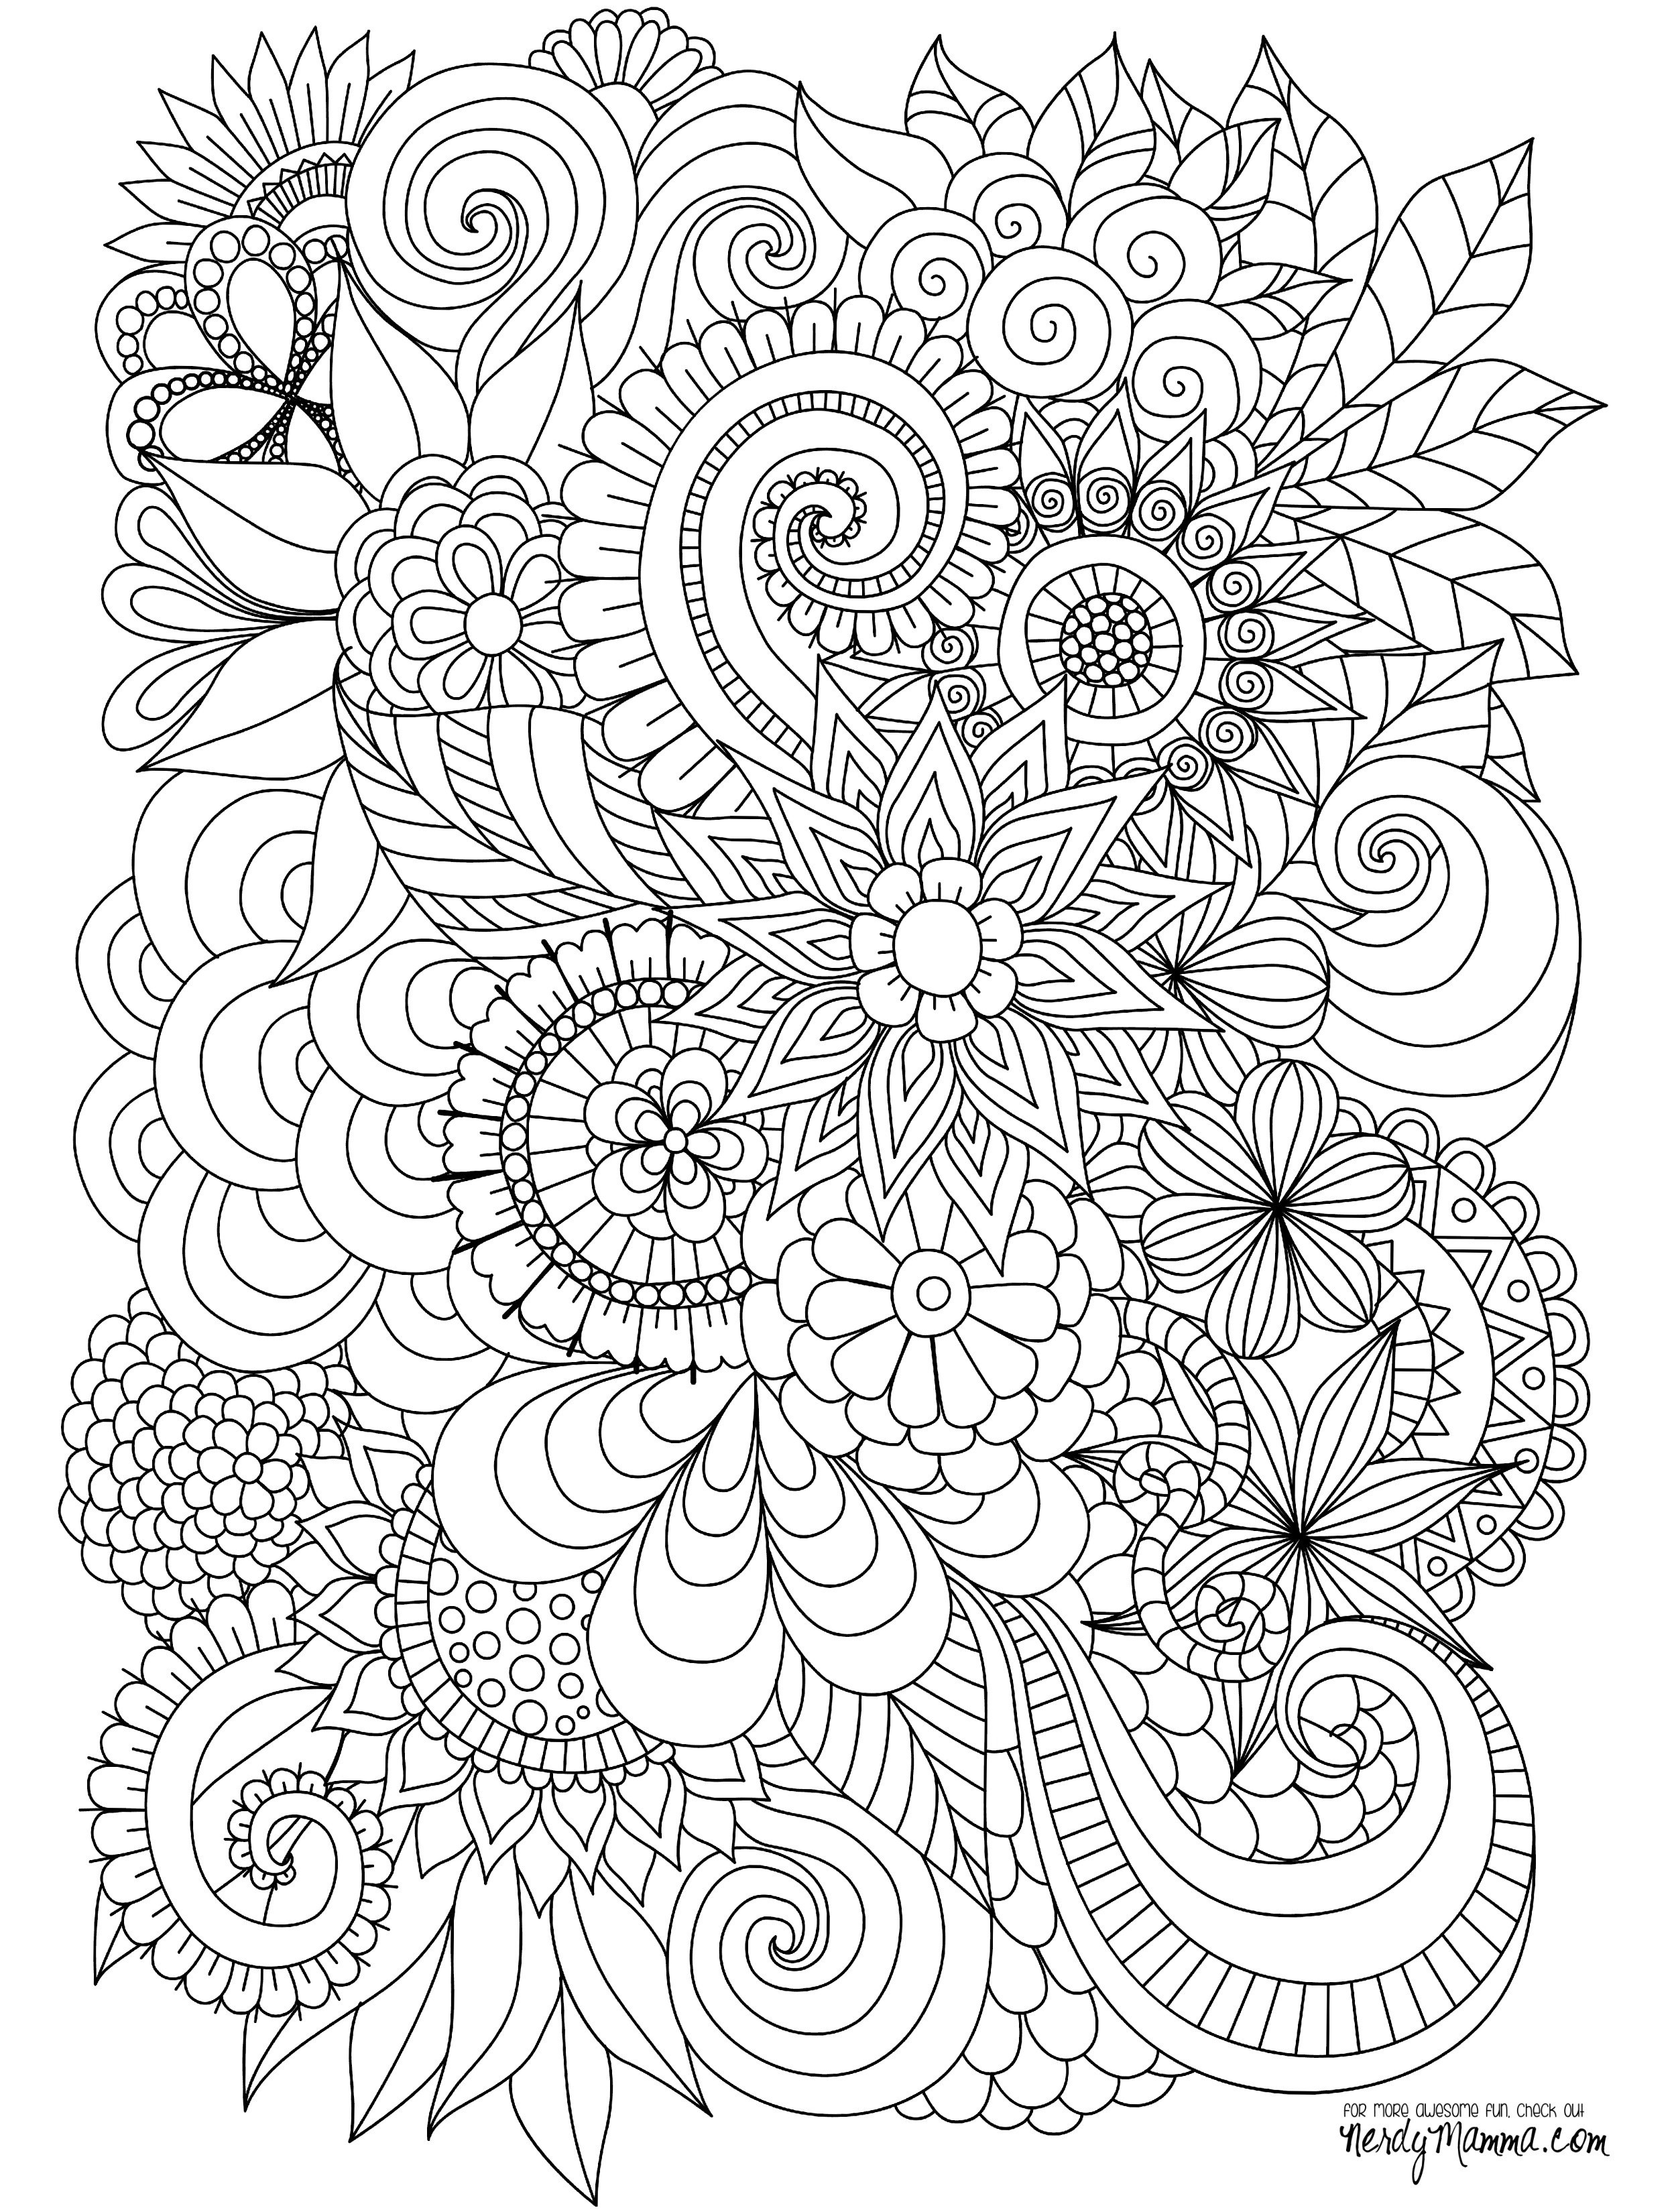 Zentangle Patterns Coloring Pages At Getdrawings Free Download